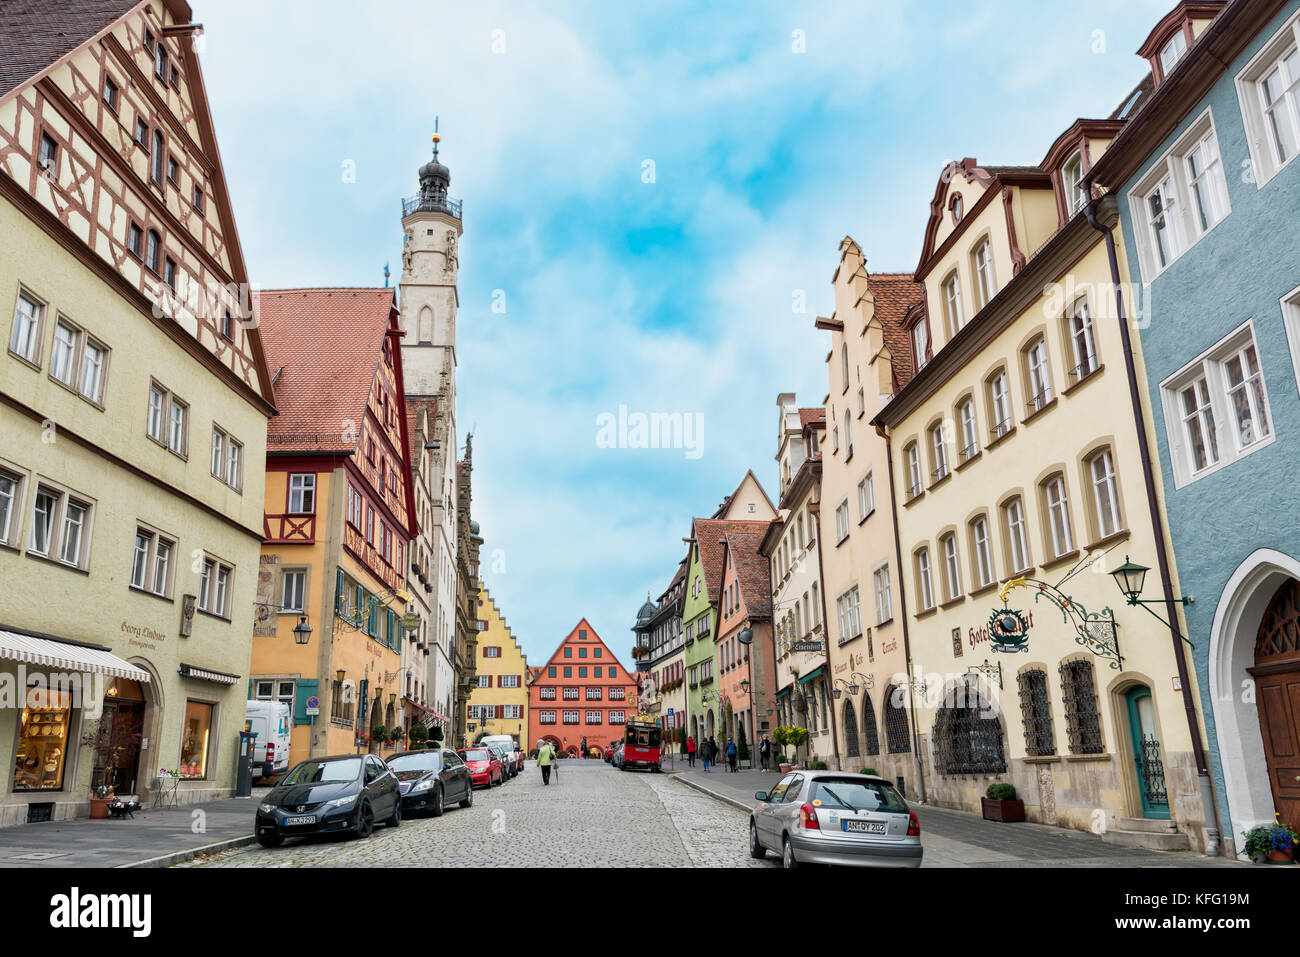 ROTHENBURG, GERMANY - OCTOBER 24, 2017: Unidentified pedestriants walk along the historic main road with its historic - Stock Image